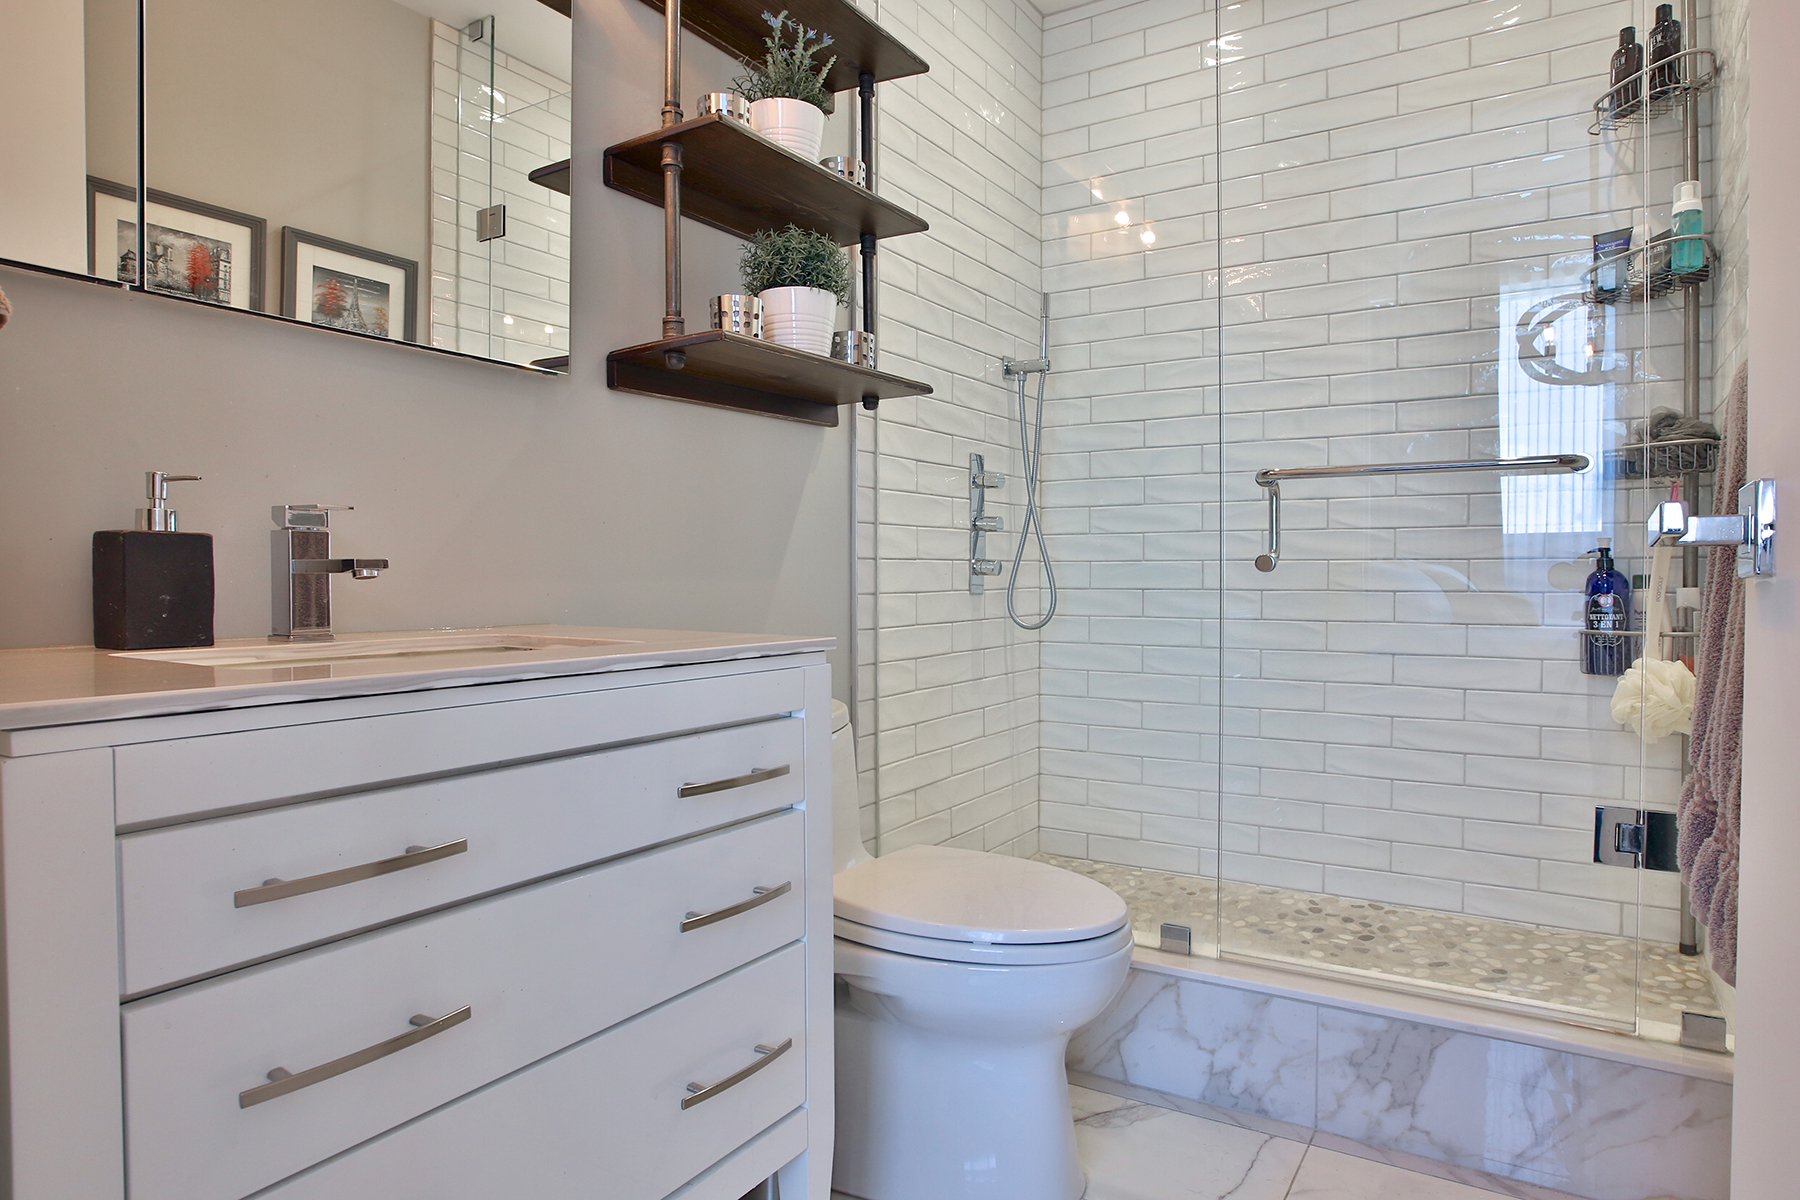 Bathrooms luxuriate with exquisite finishes like quartz and marble flooring.